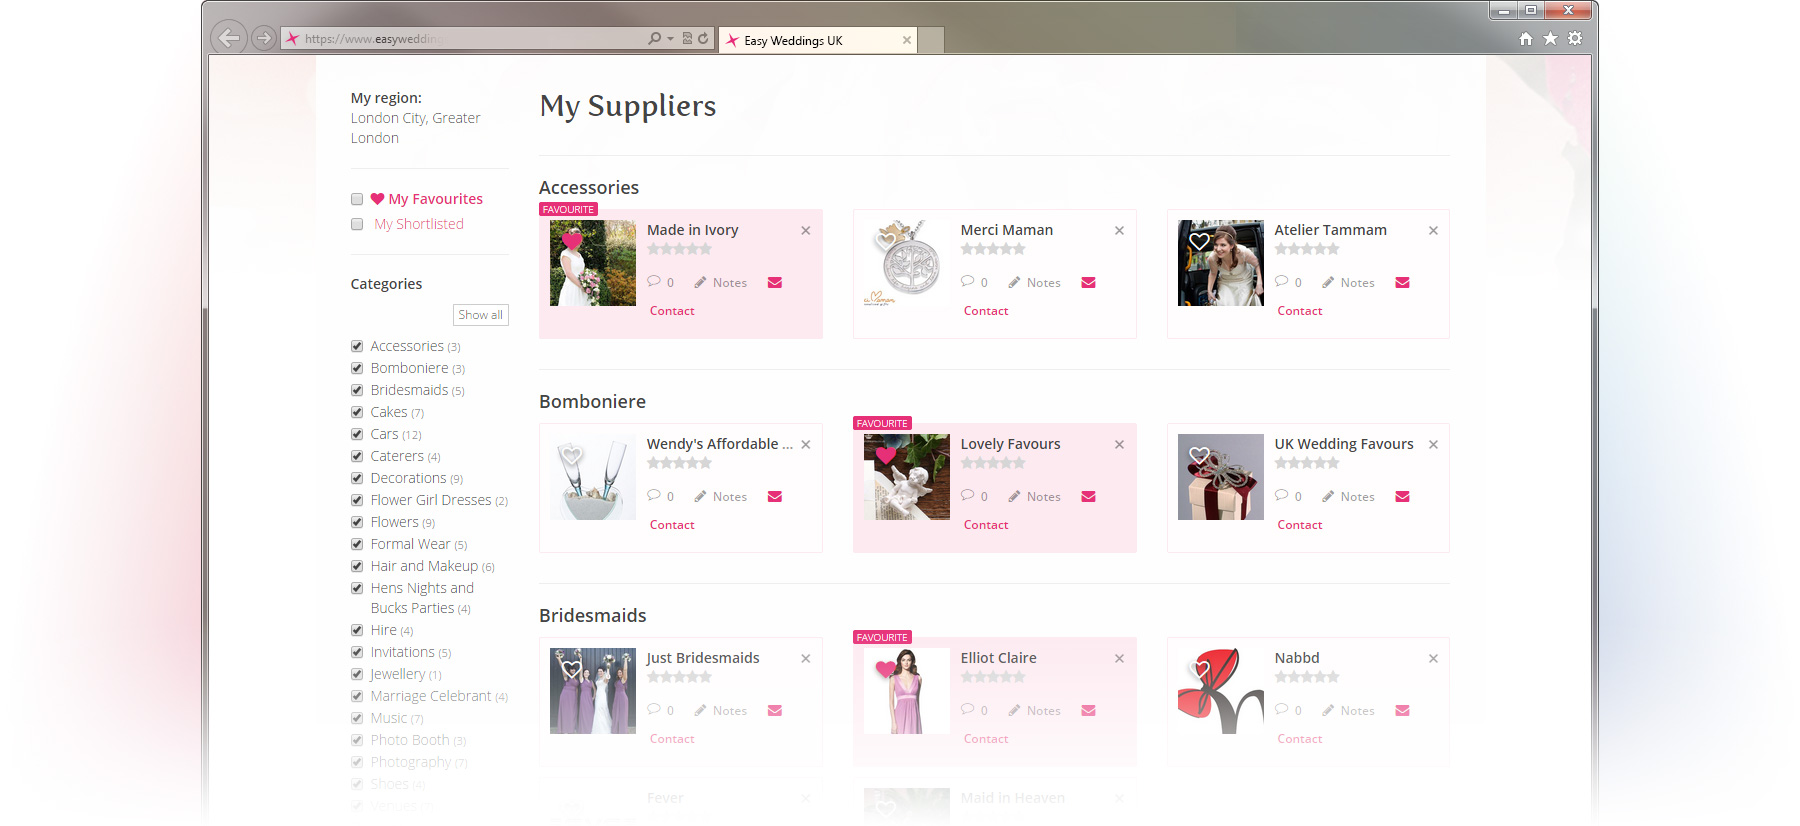 My Weddings Suppliers screen in the free Easy Weddings Wedding Planning account